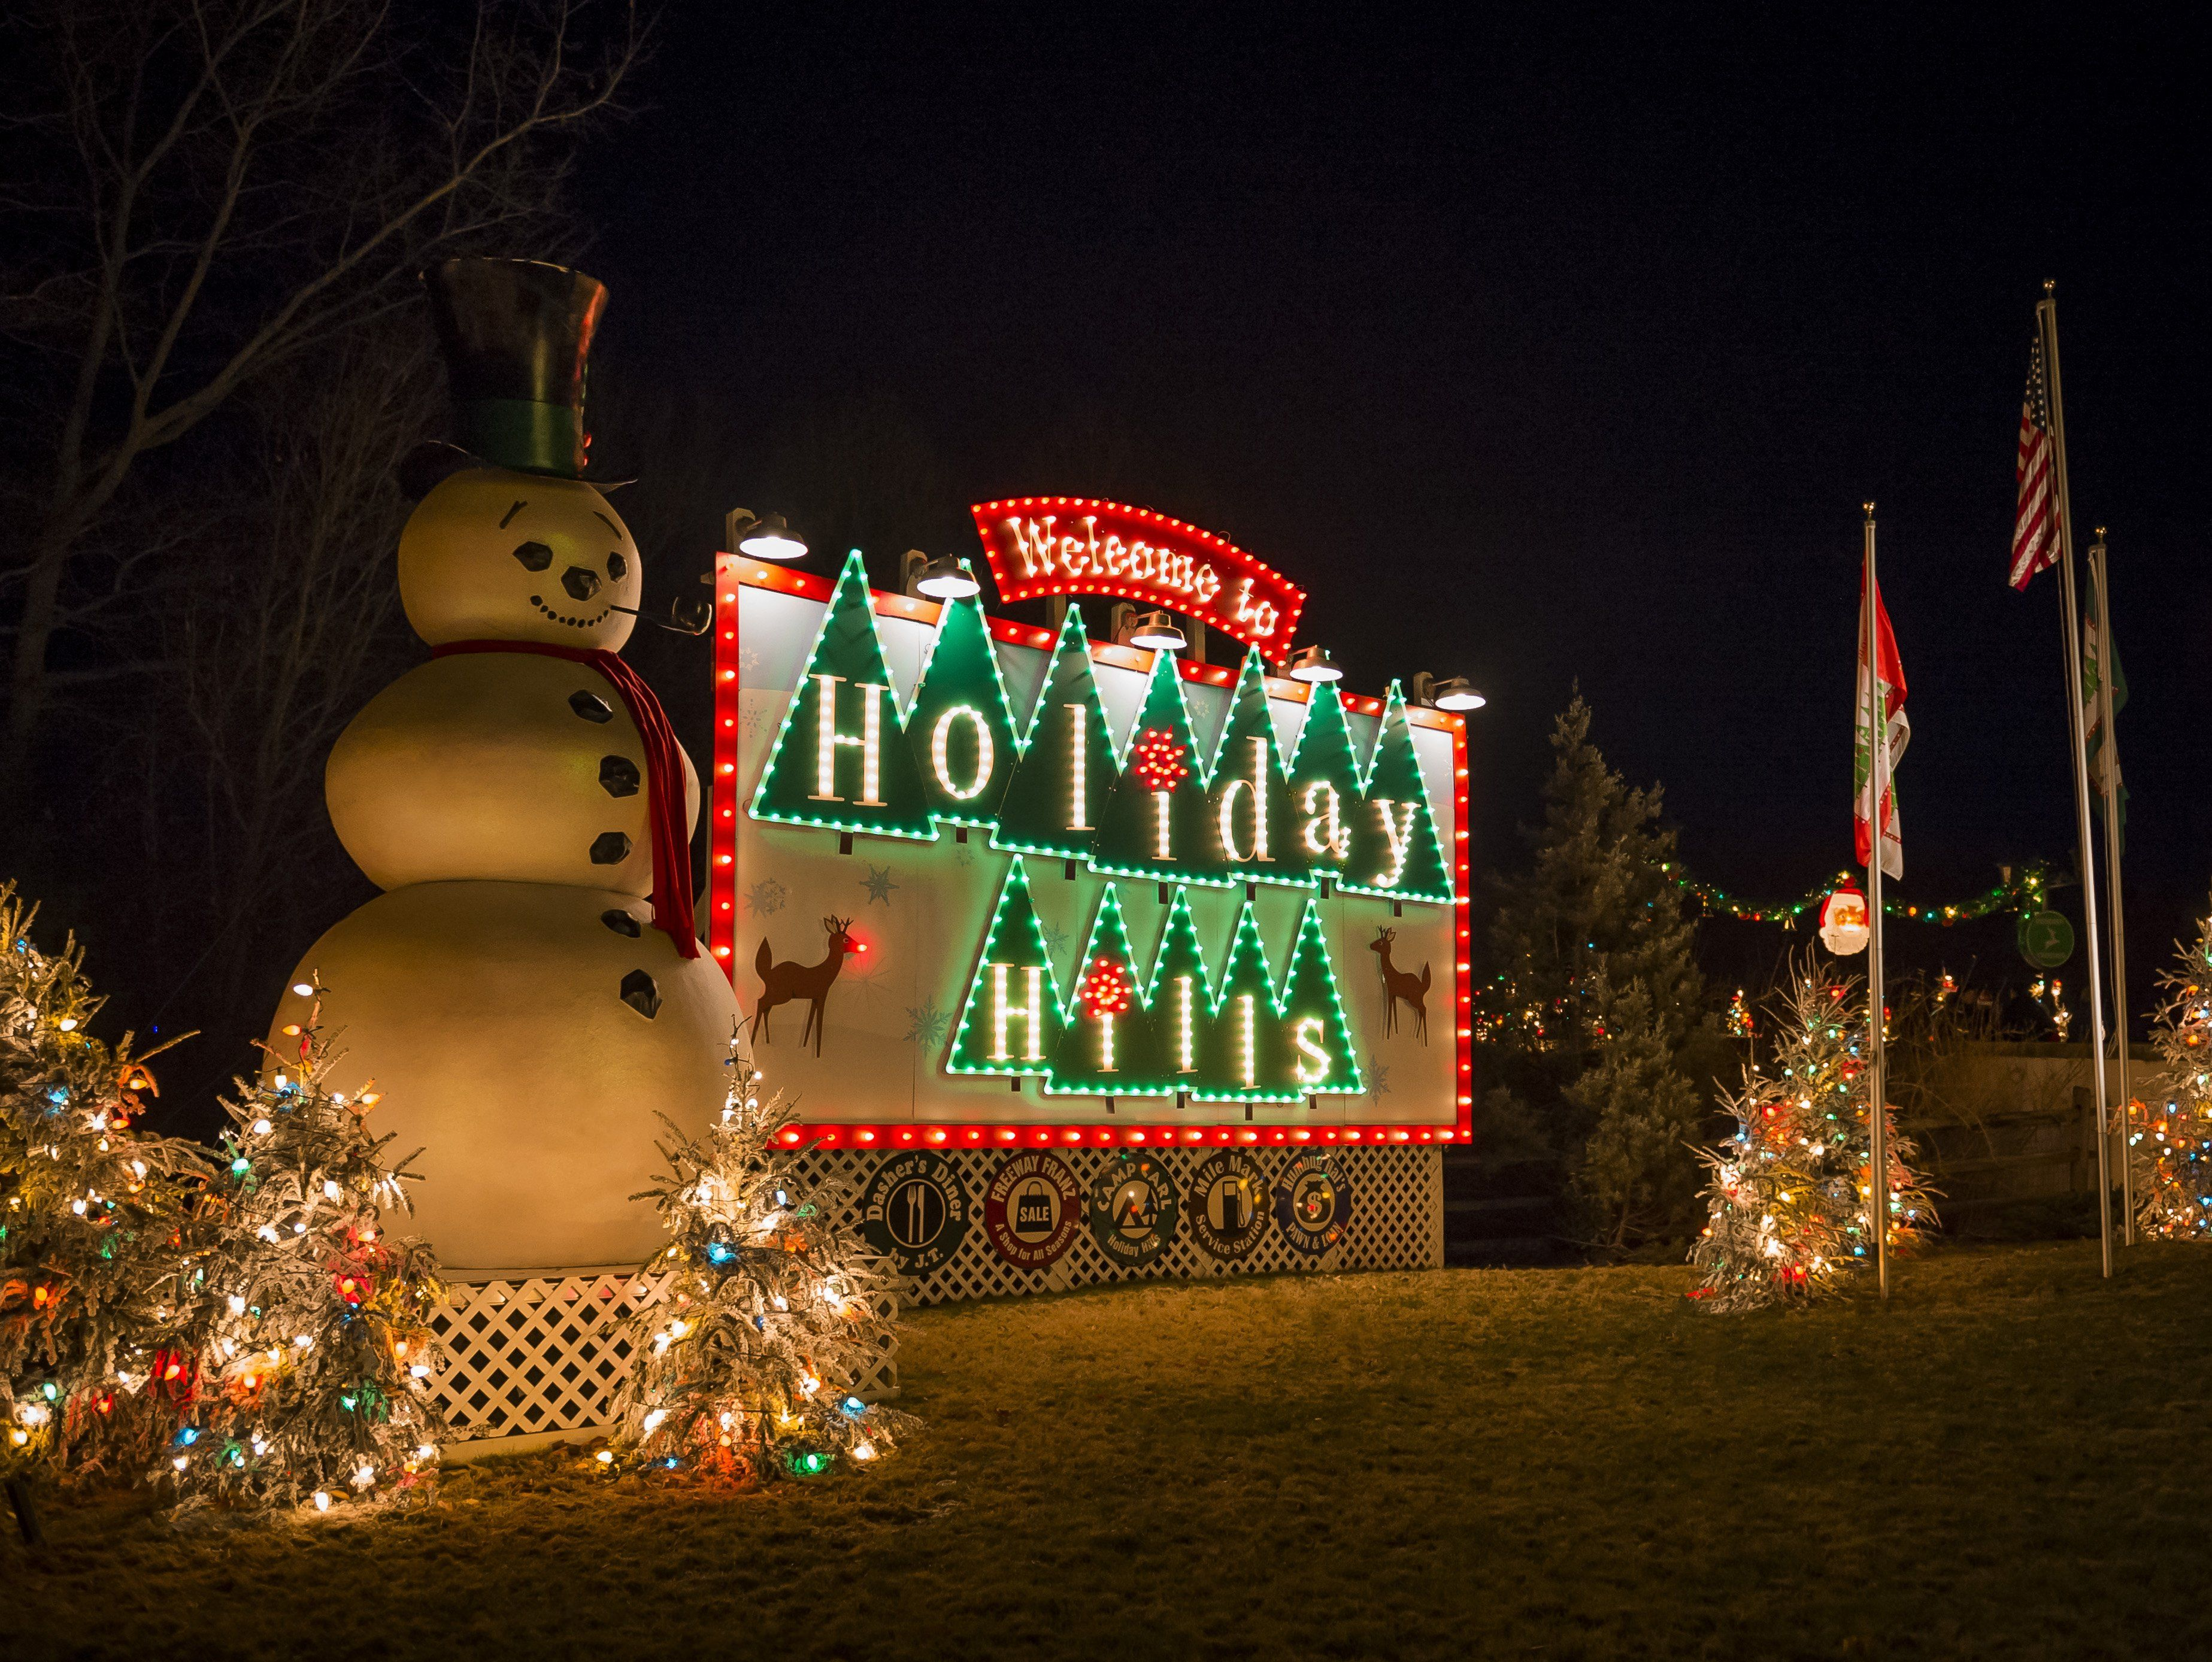 937349271095e2329b71d2d8b3bbca89 - What Rides Are Open At Christmas Town Busch Gardens Williamsburg